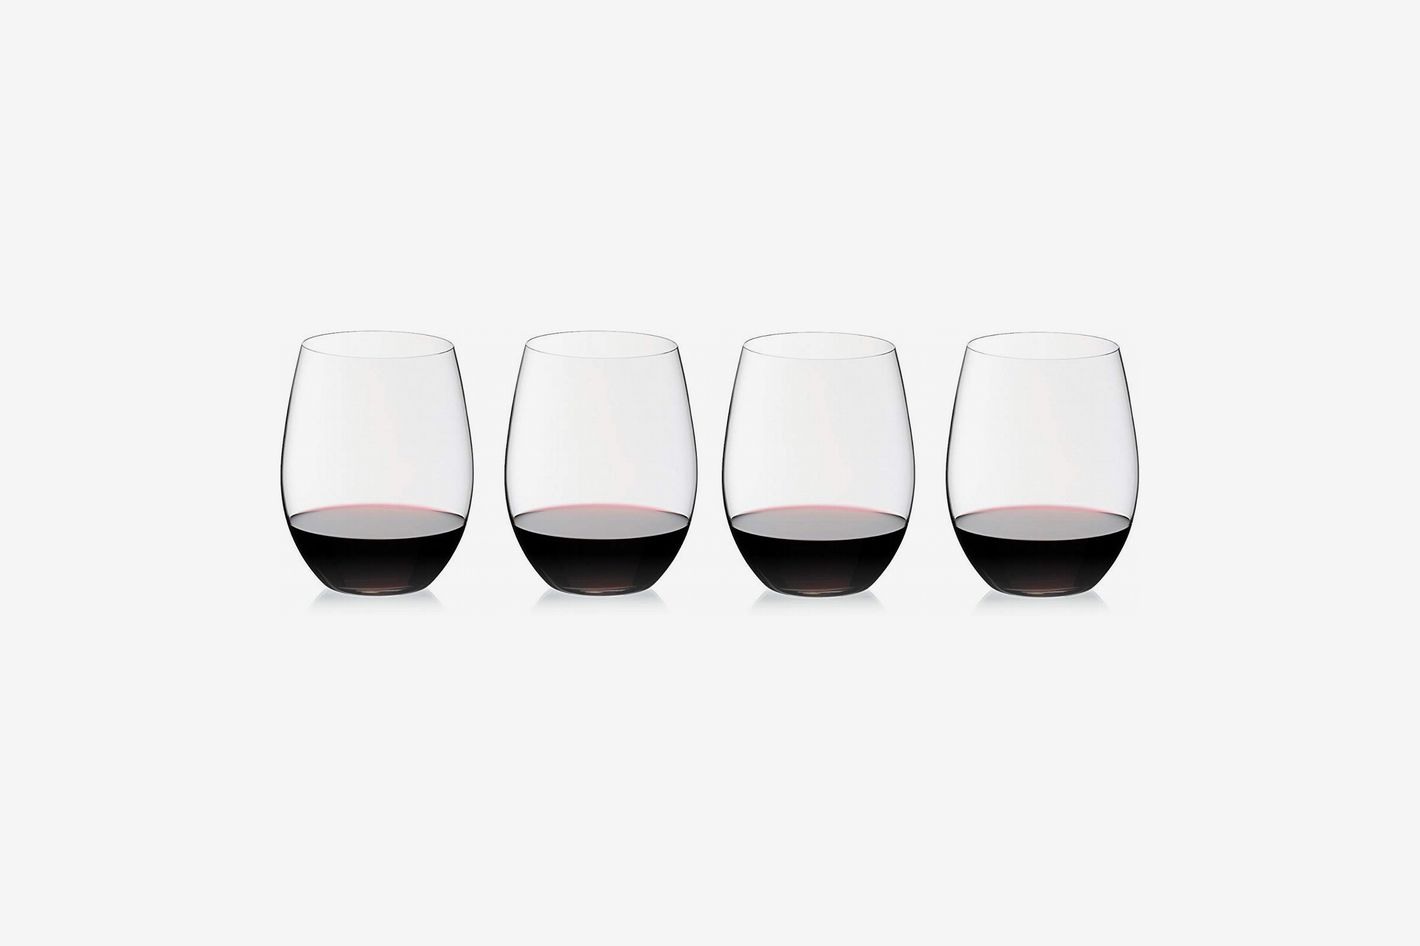 d8c7ad88d724 Riedel O Stemless Cabernet Merlot Wine Glass (Set of 4) at Amazon. Buy · Chef s  Star 15 Ounce ...